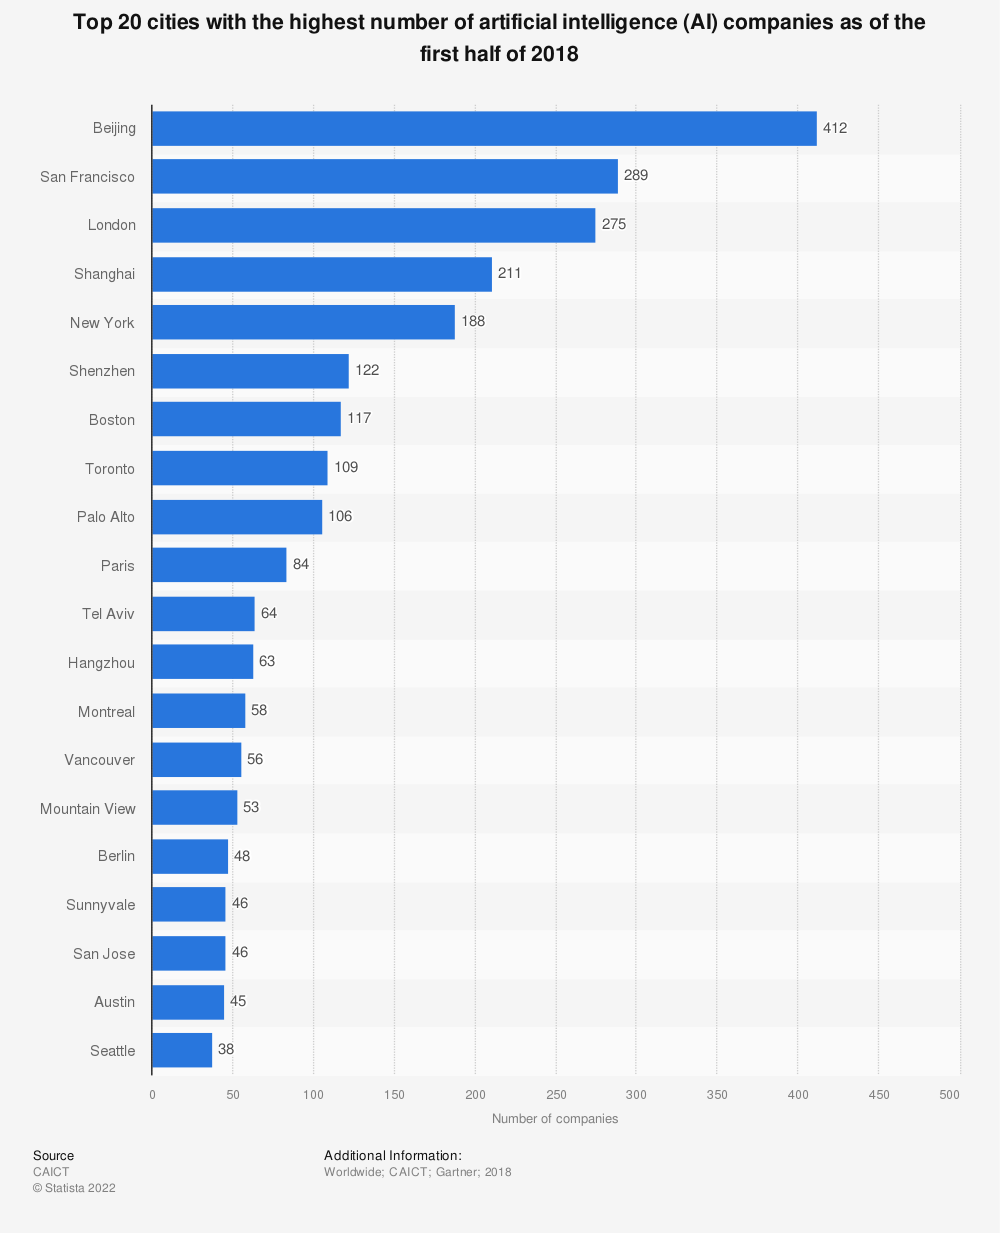 Statistic: Top 20 cities with the highest number of artificial intelligence (AI) companies as of the first half of 2018 | Statista